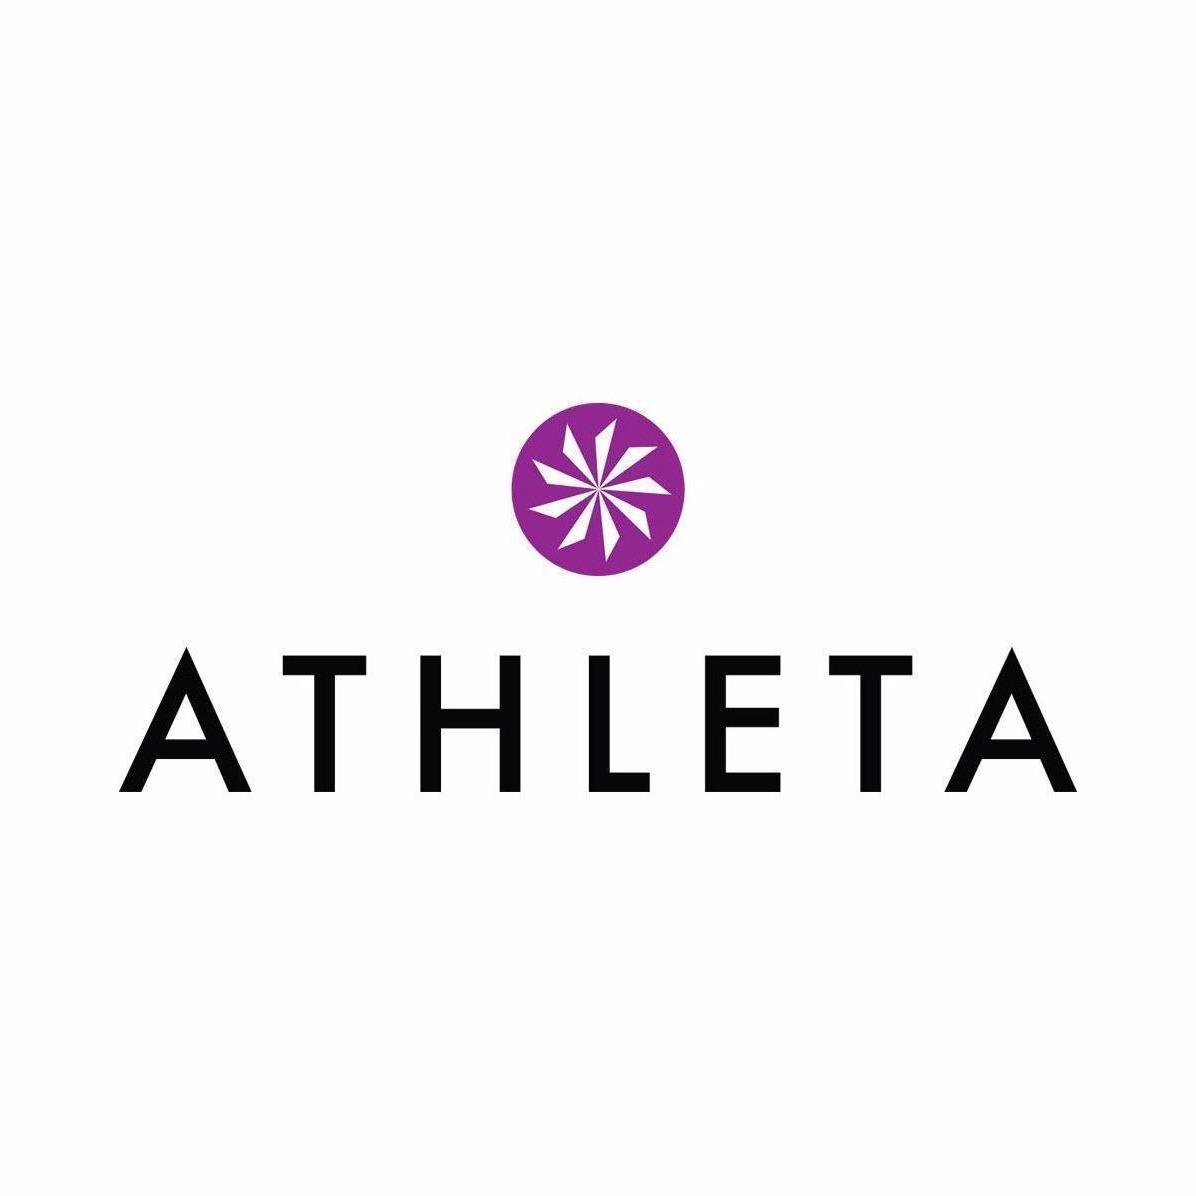 Women's Clothing Store in CA Woodland Hills 91367 Athleta 6320 Topanga Canyon Blvd  (818)702-0039